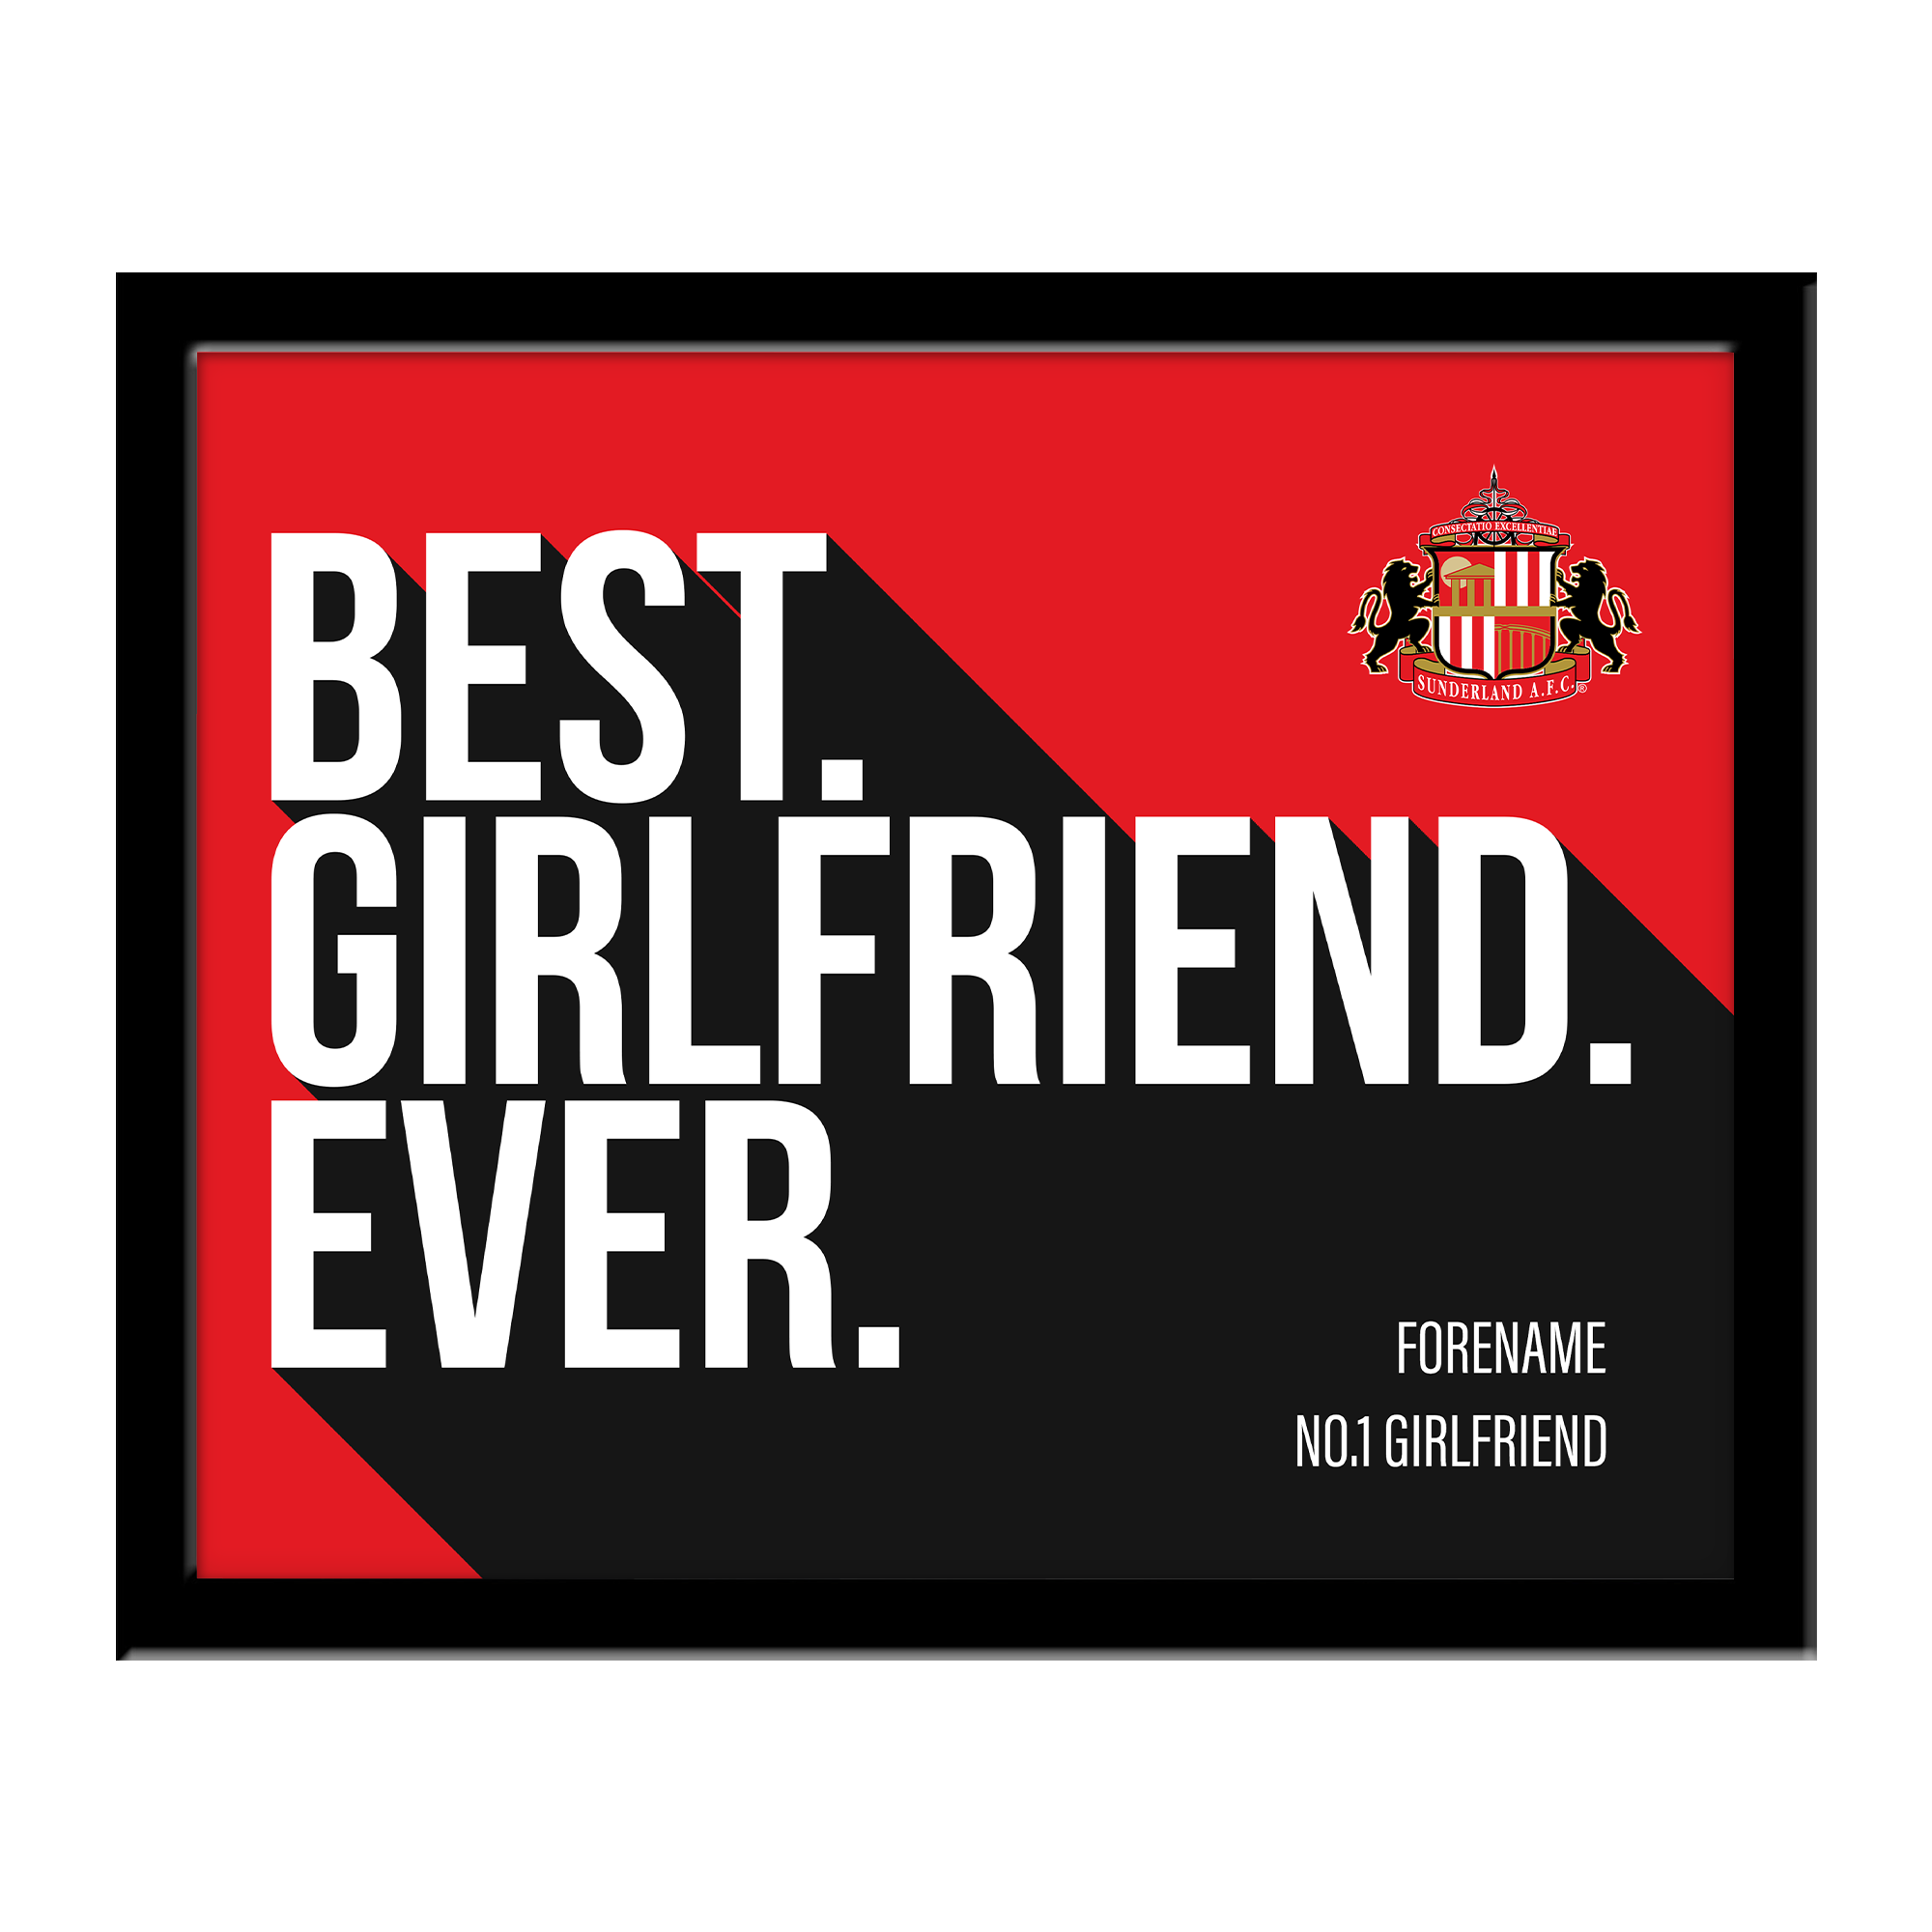 Sunderland Best Girlfriend Ever 10 x 8 Photo Framed